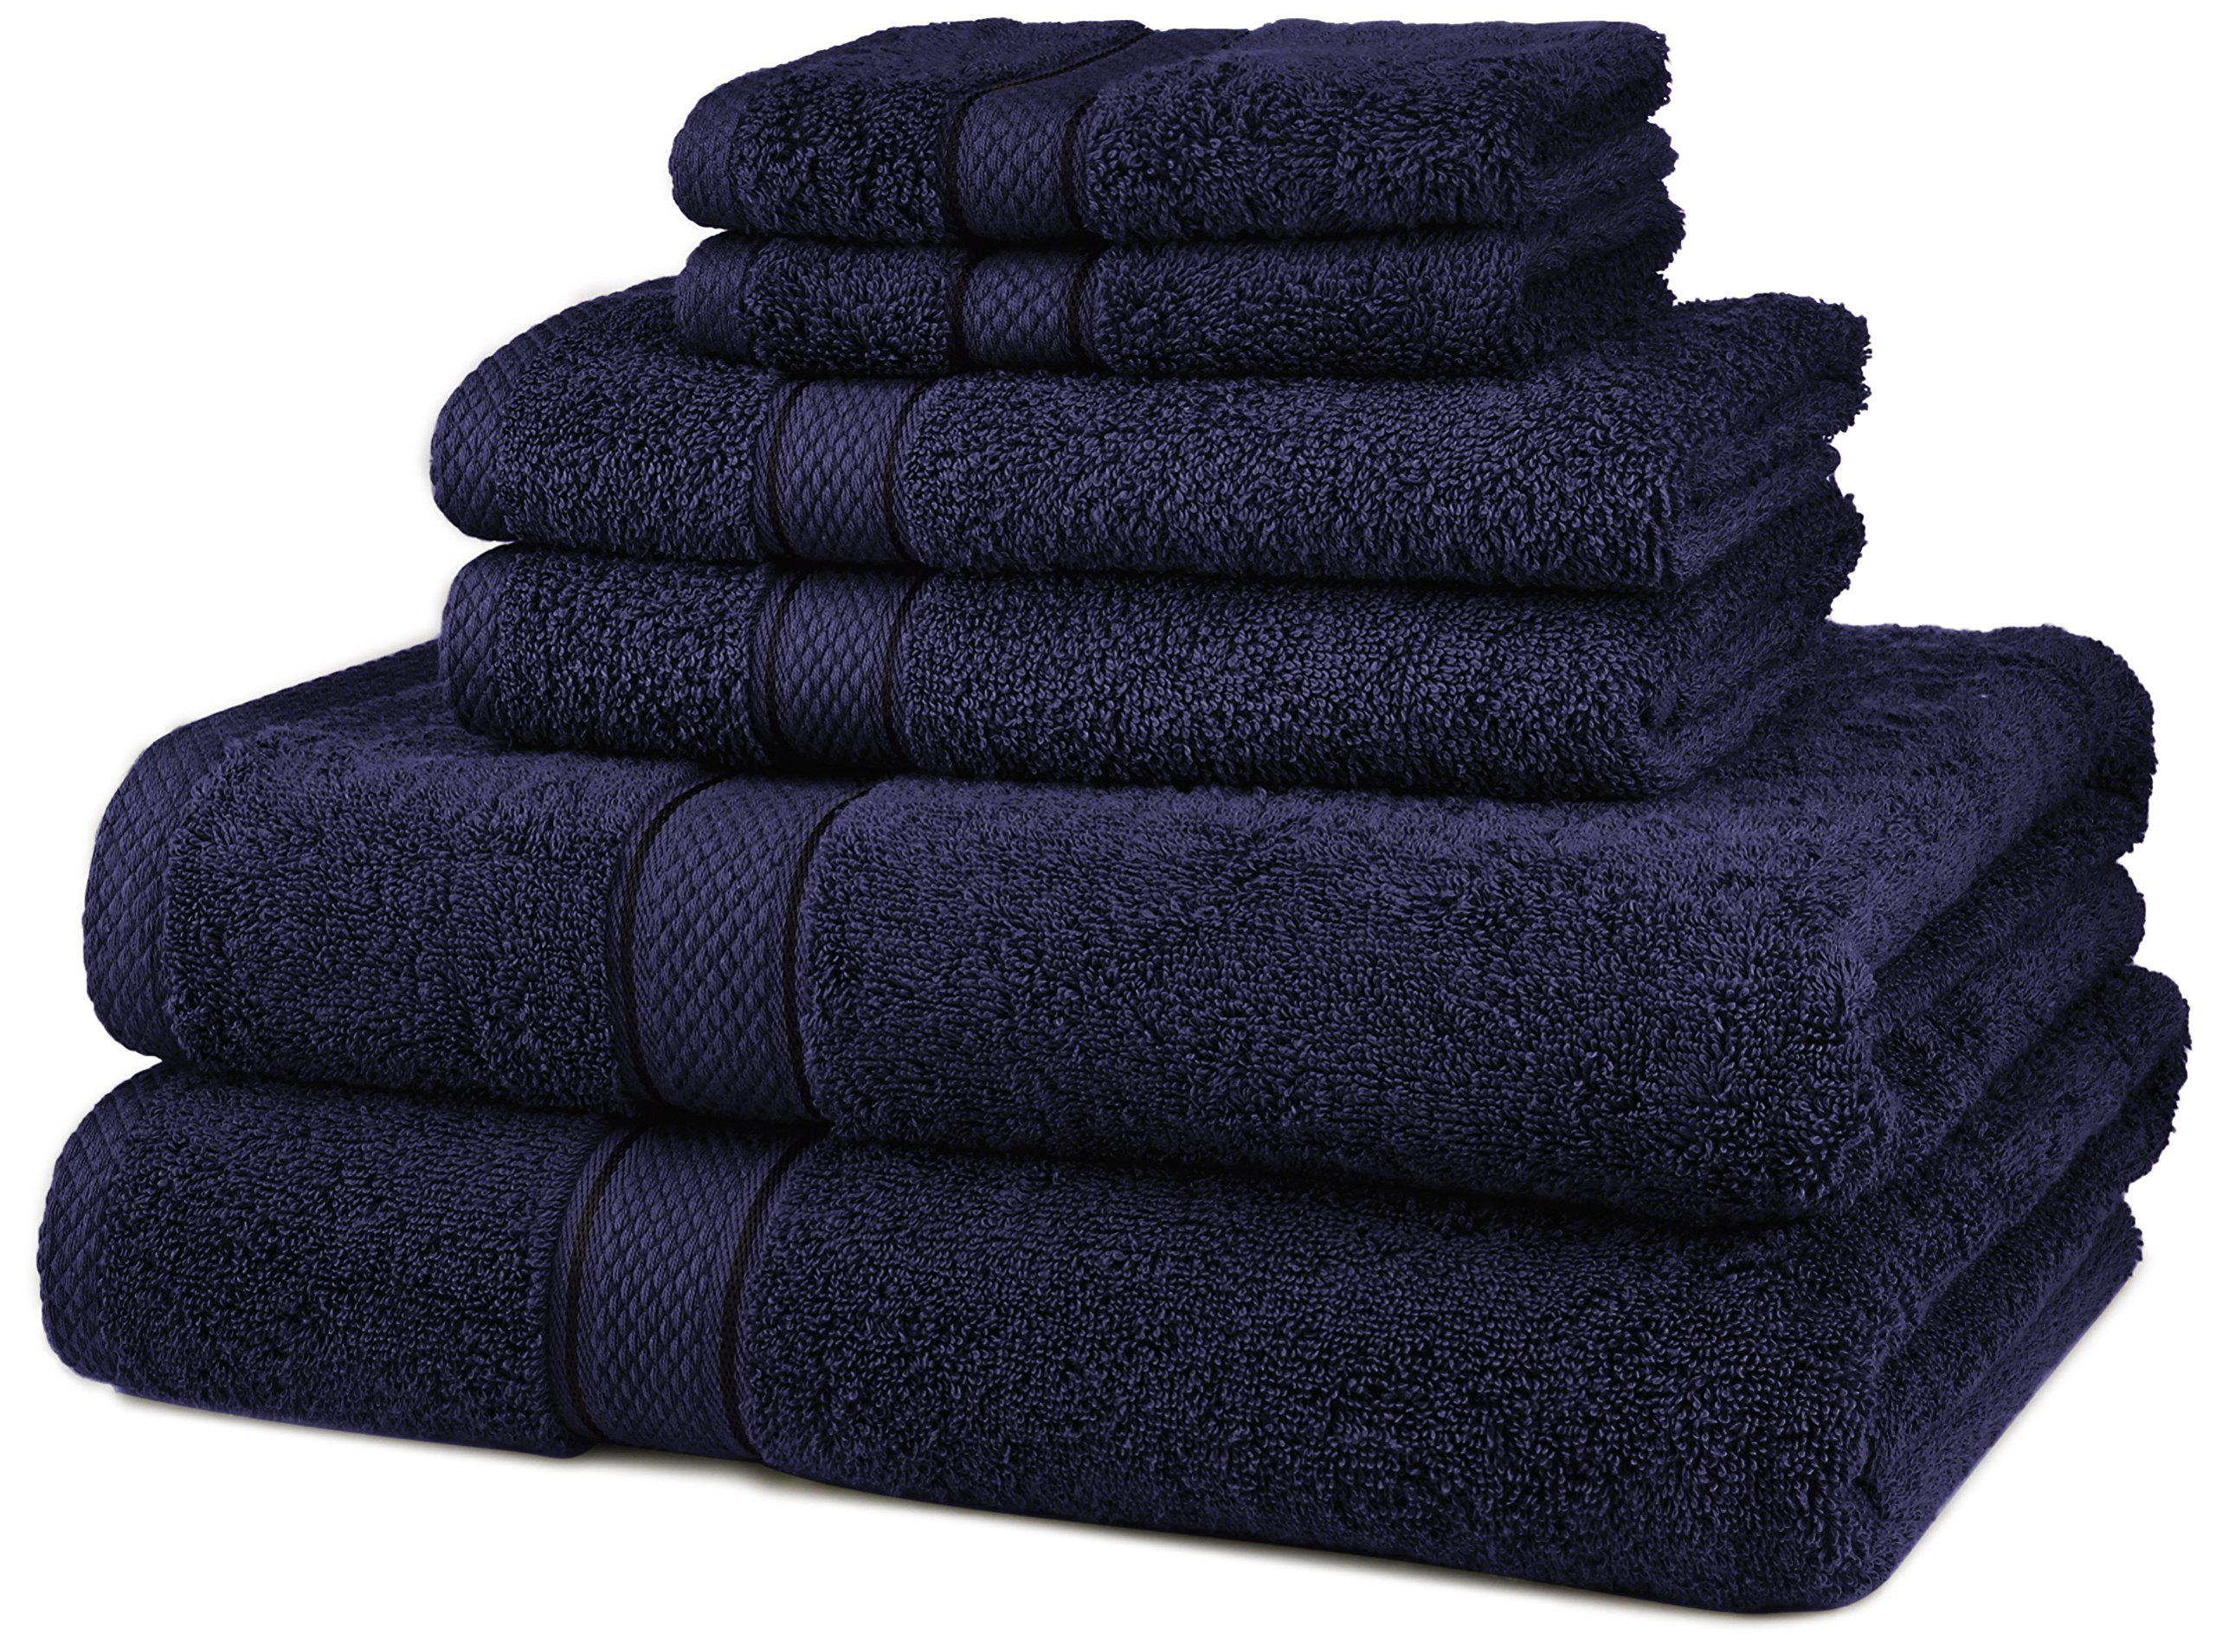 Pinzon Blended Egyptian Cotton 6-Piece Towel Set, Navy by Pinzon by Amazon